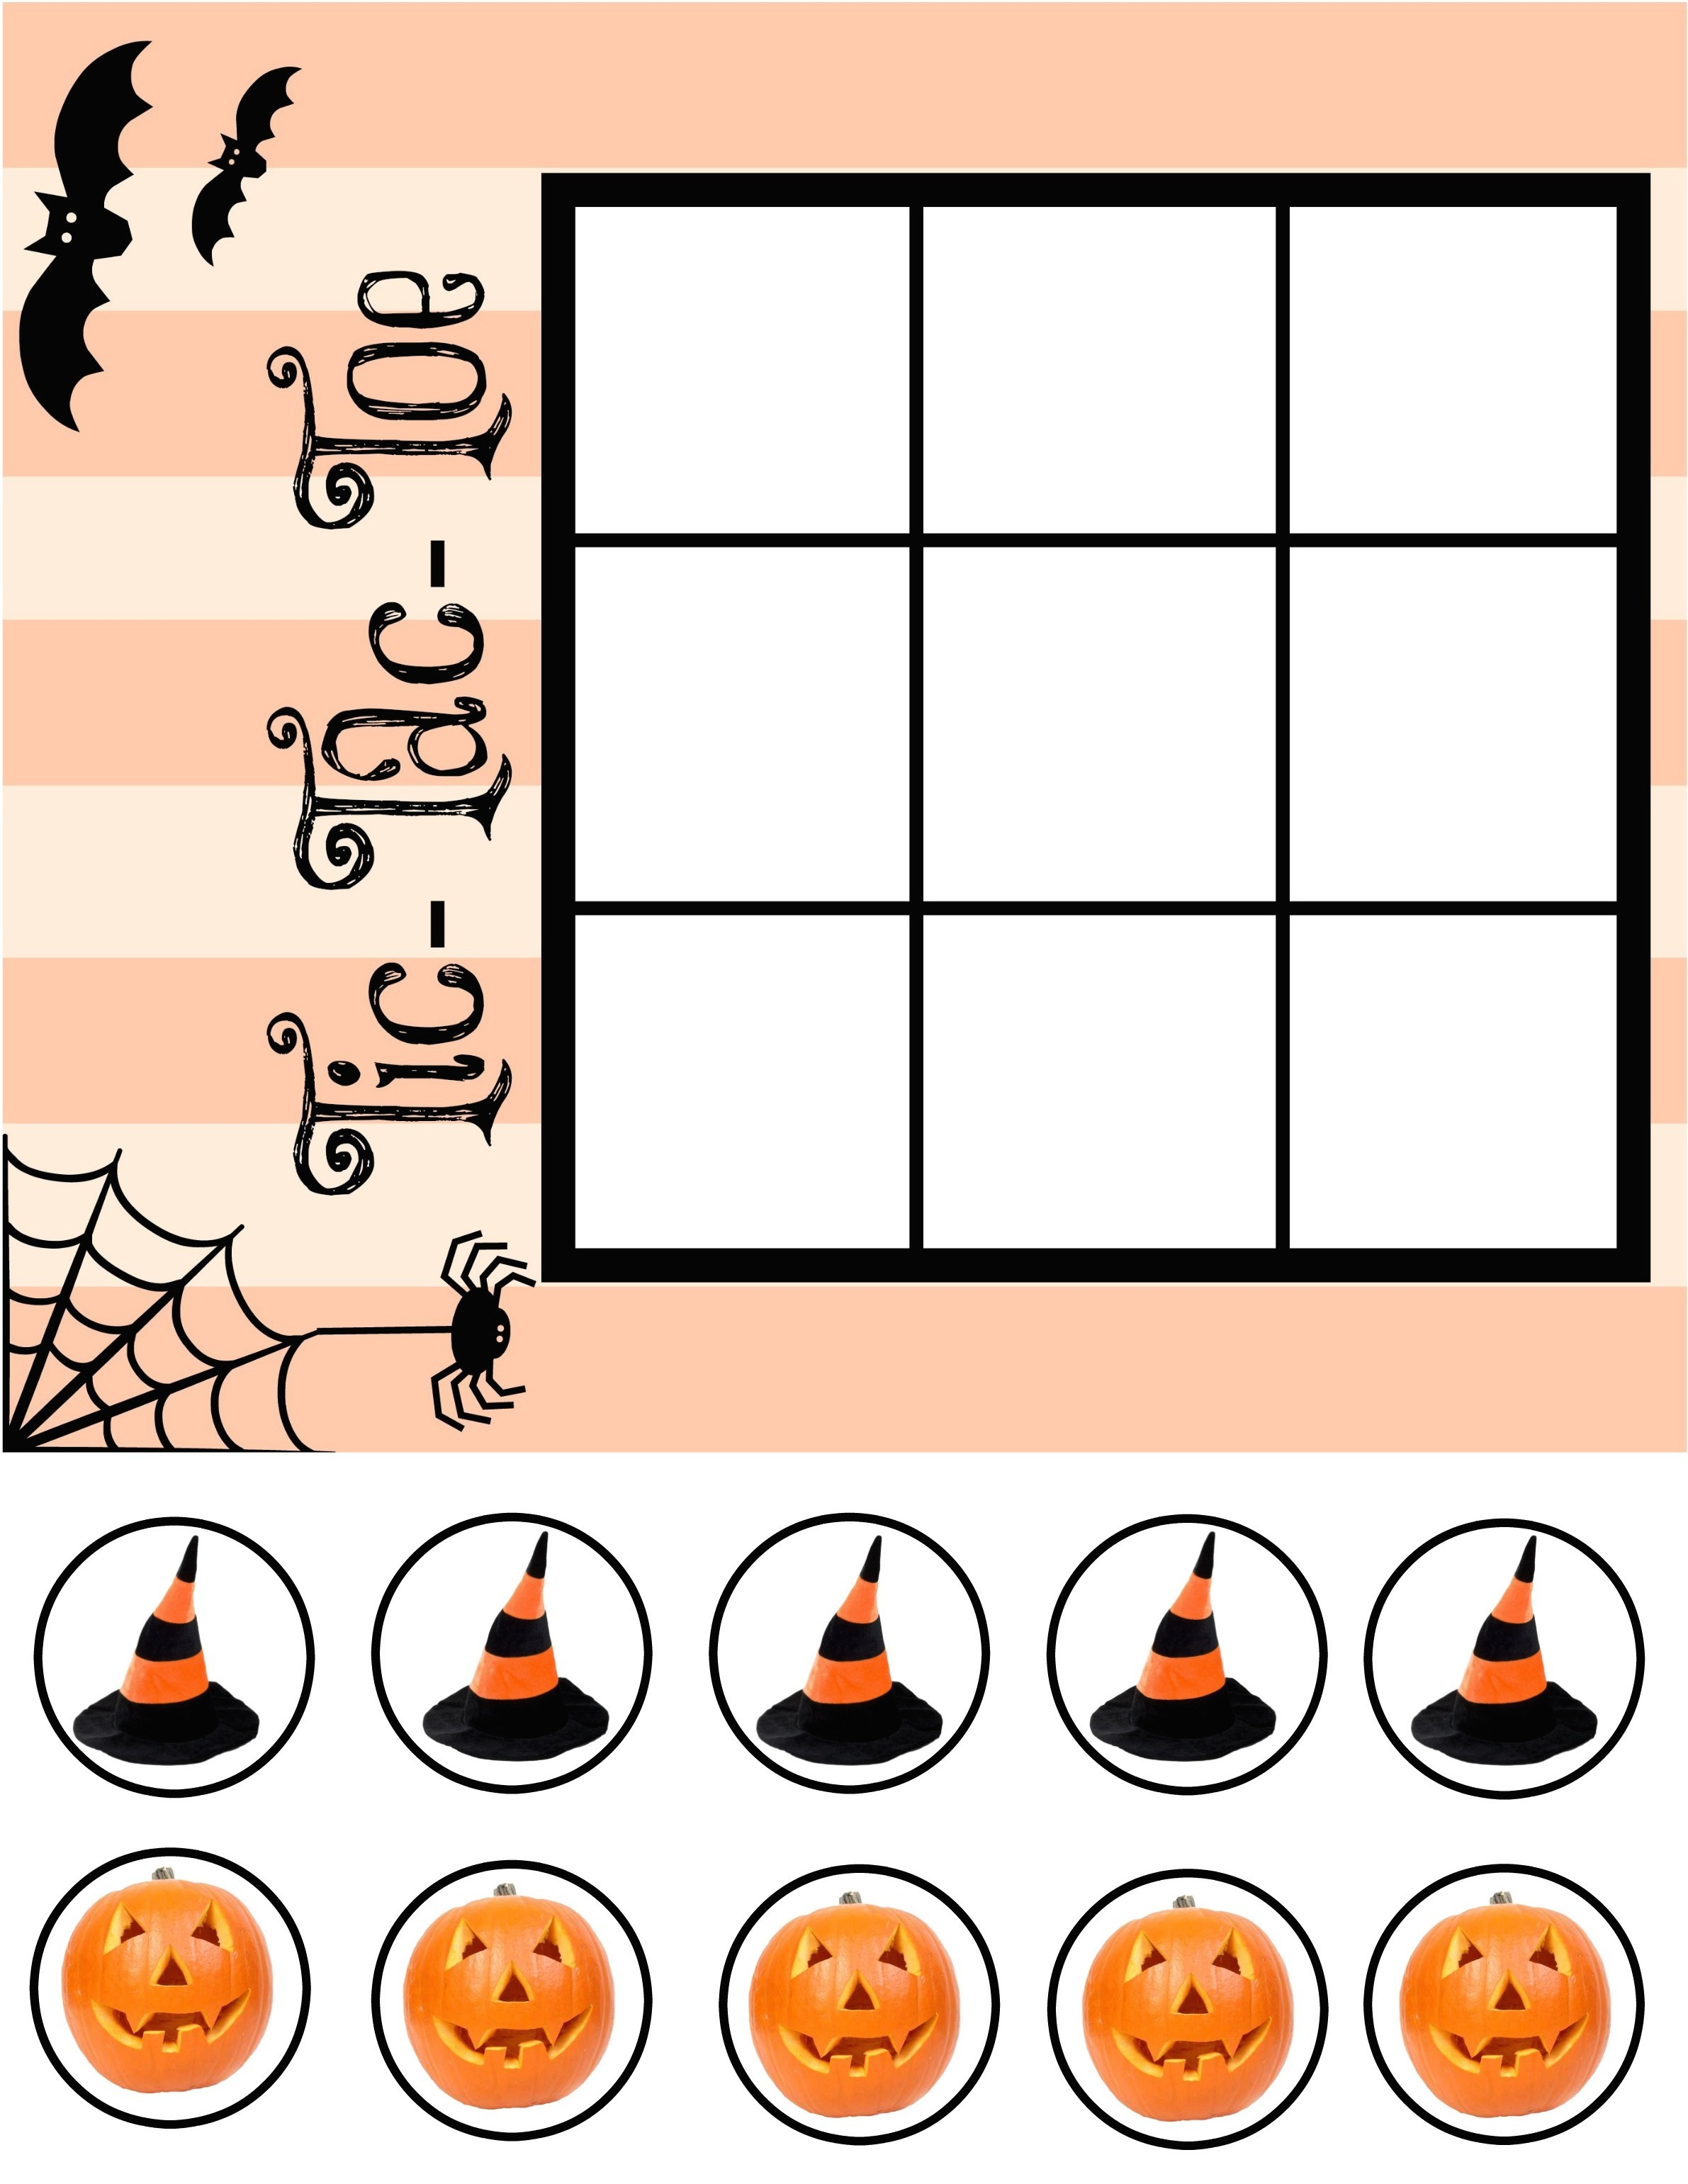 image about Tic Tac Toe Printable identify Halloween Tic Tac Toe PRINTABLE - Our Potluck Relatives